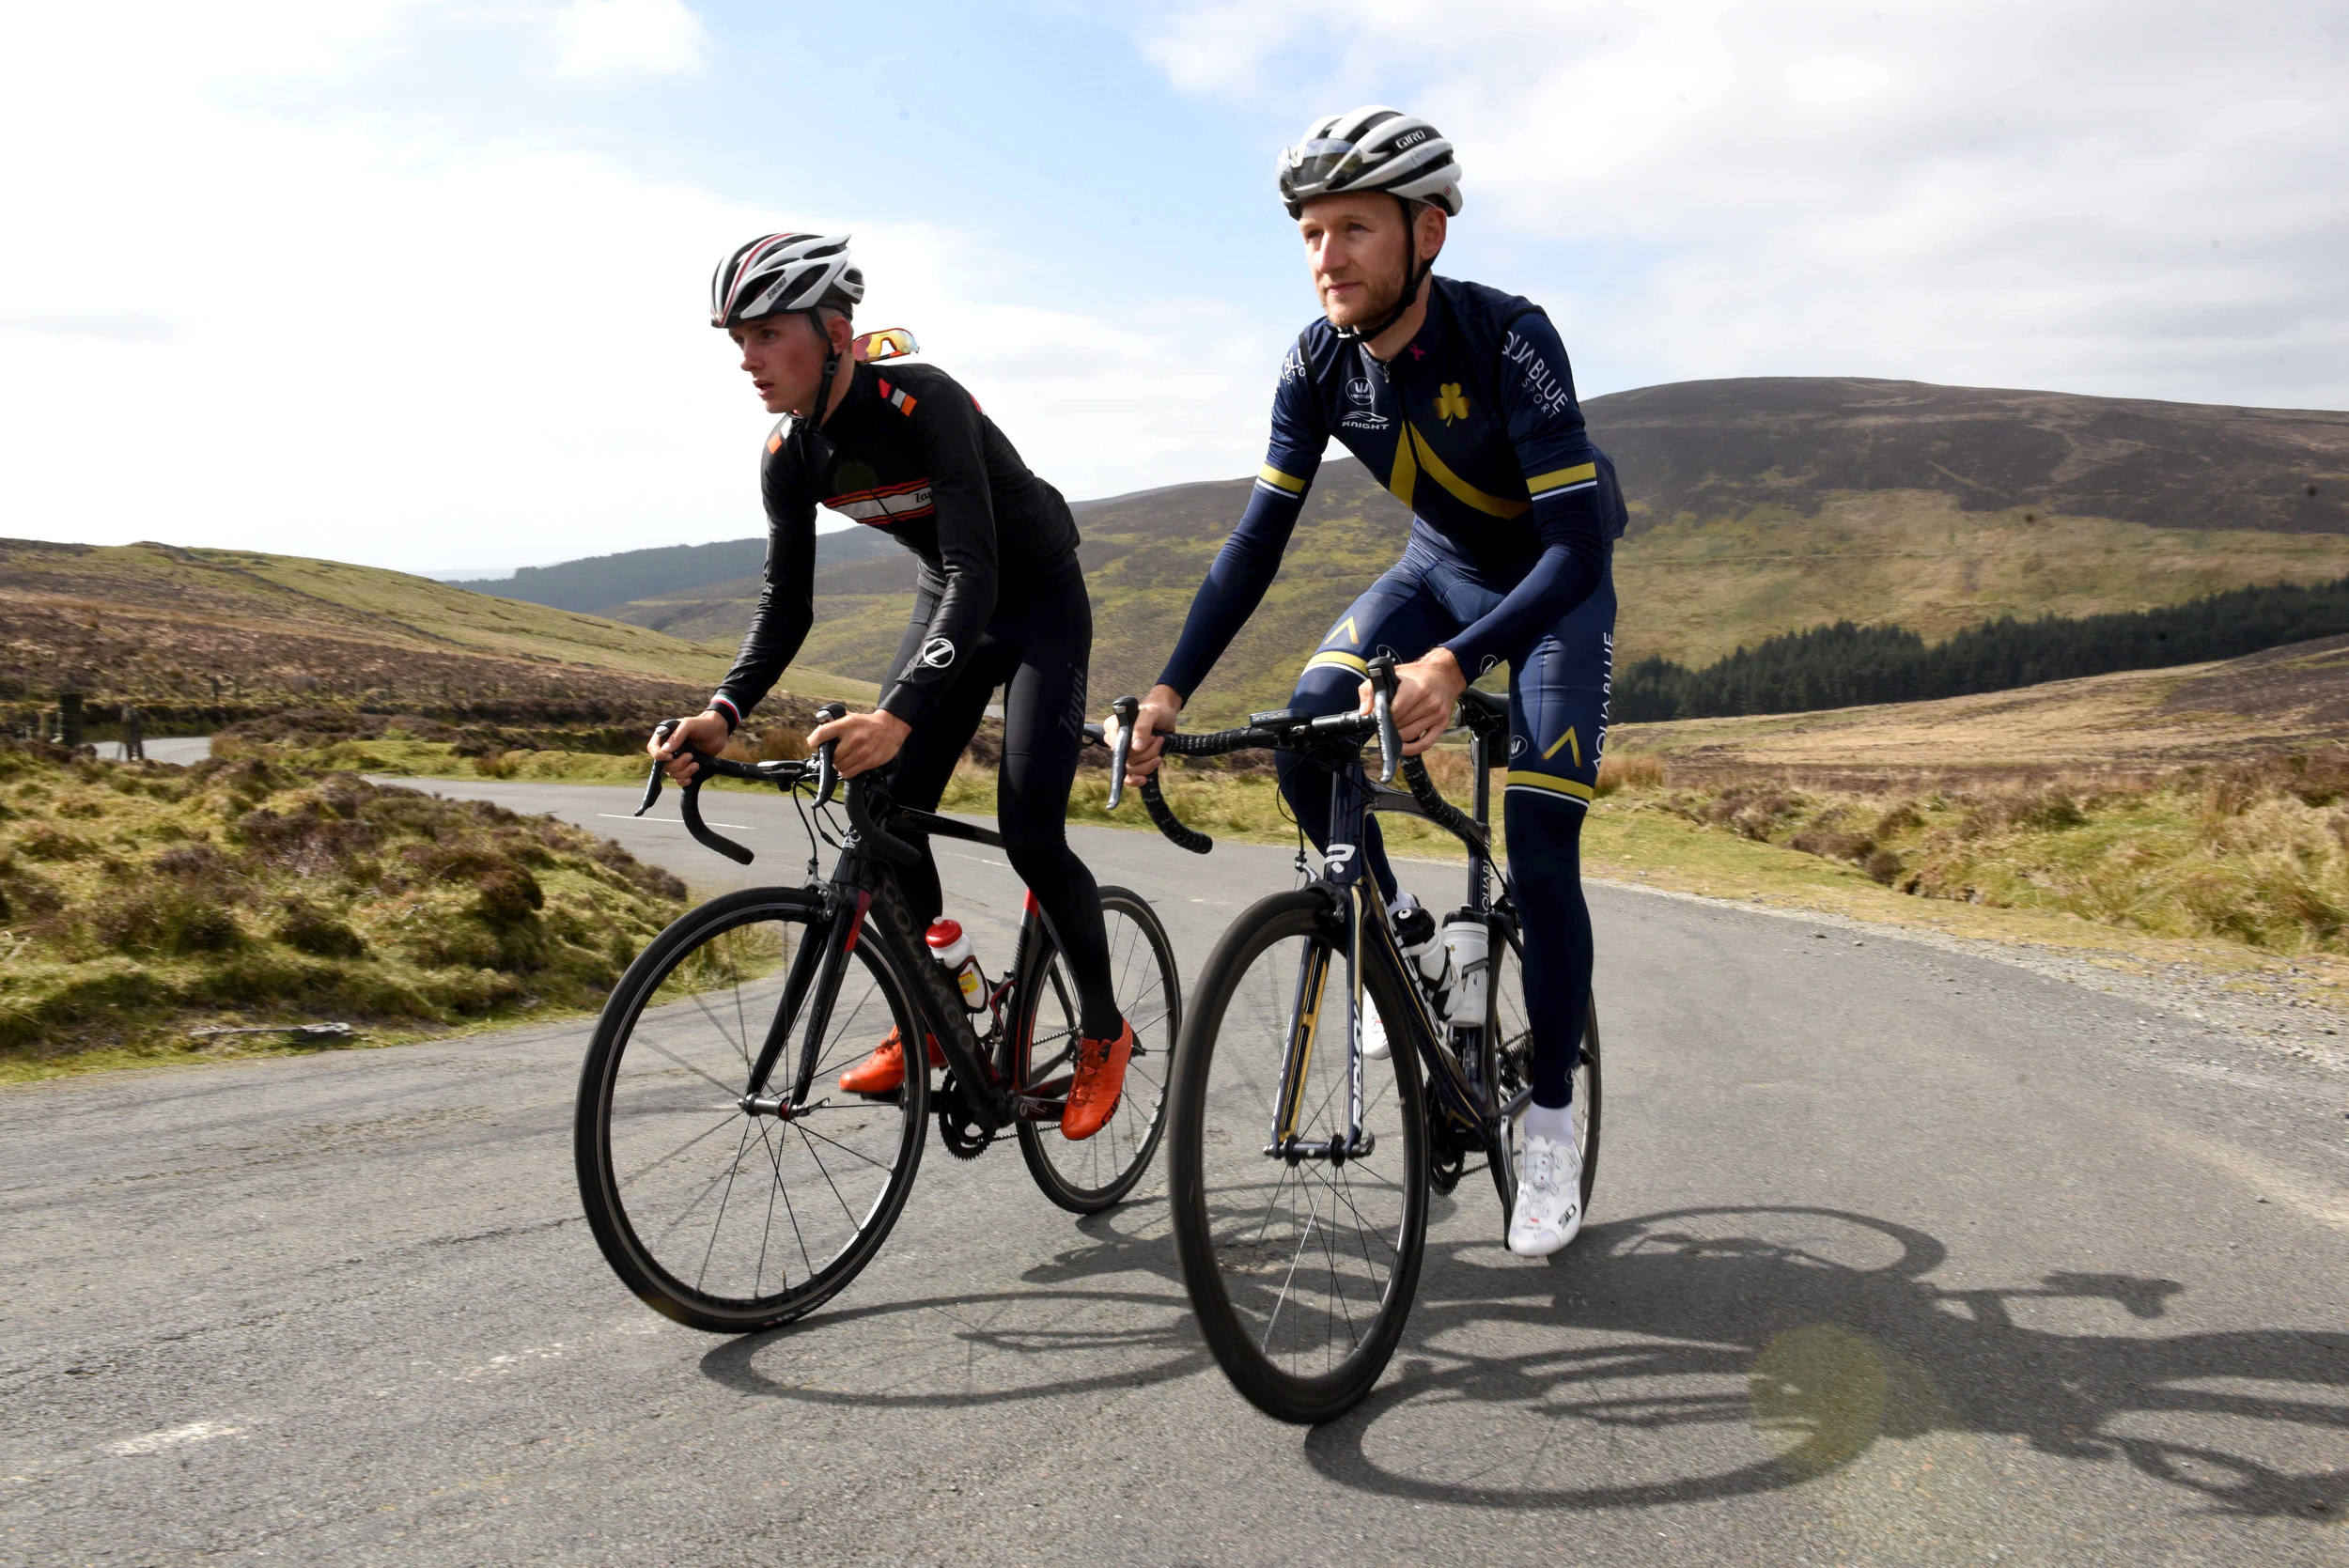 Cyclists Owen Dudley and Mark Christian at the top of the Gran Fondo climb at West Baldwin, part of a promotional shoot for Cyclefest 2017